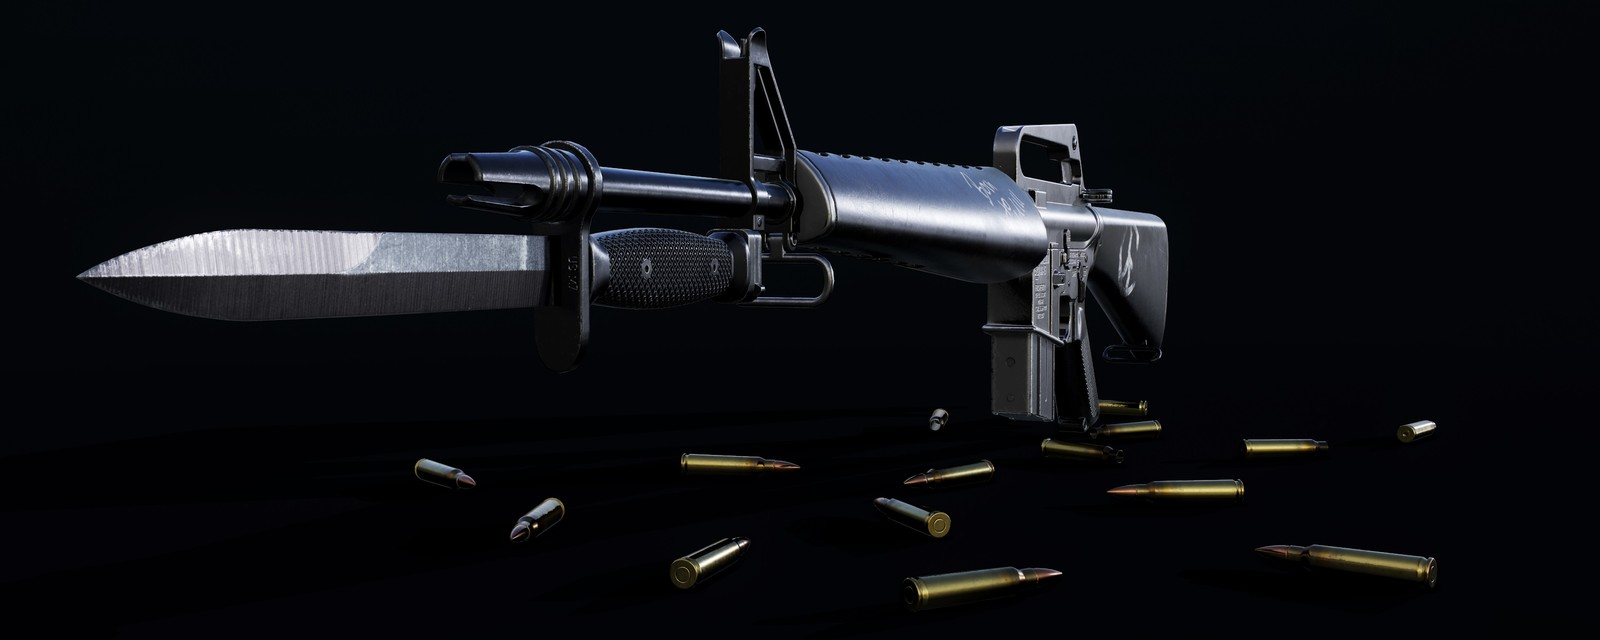 M16A1 with Bayonet